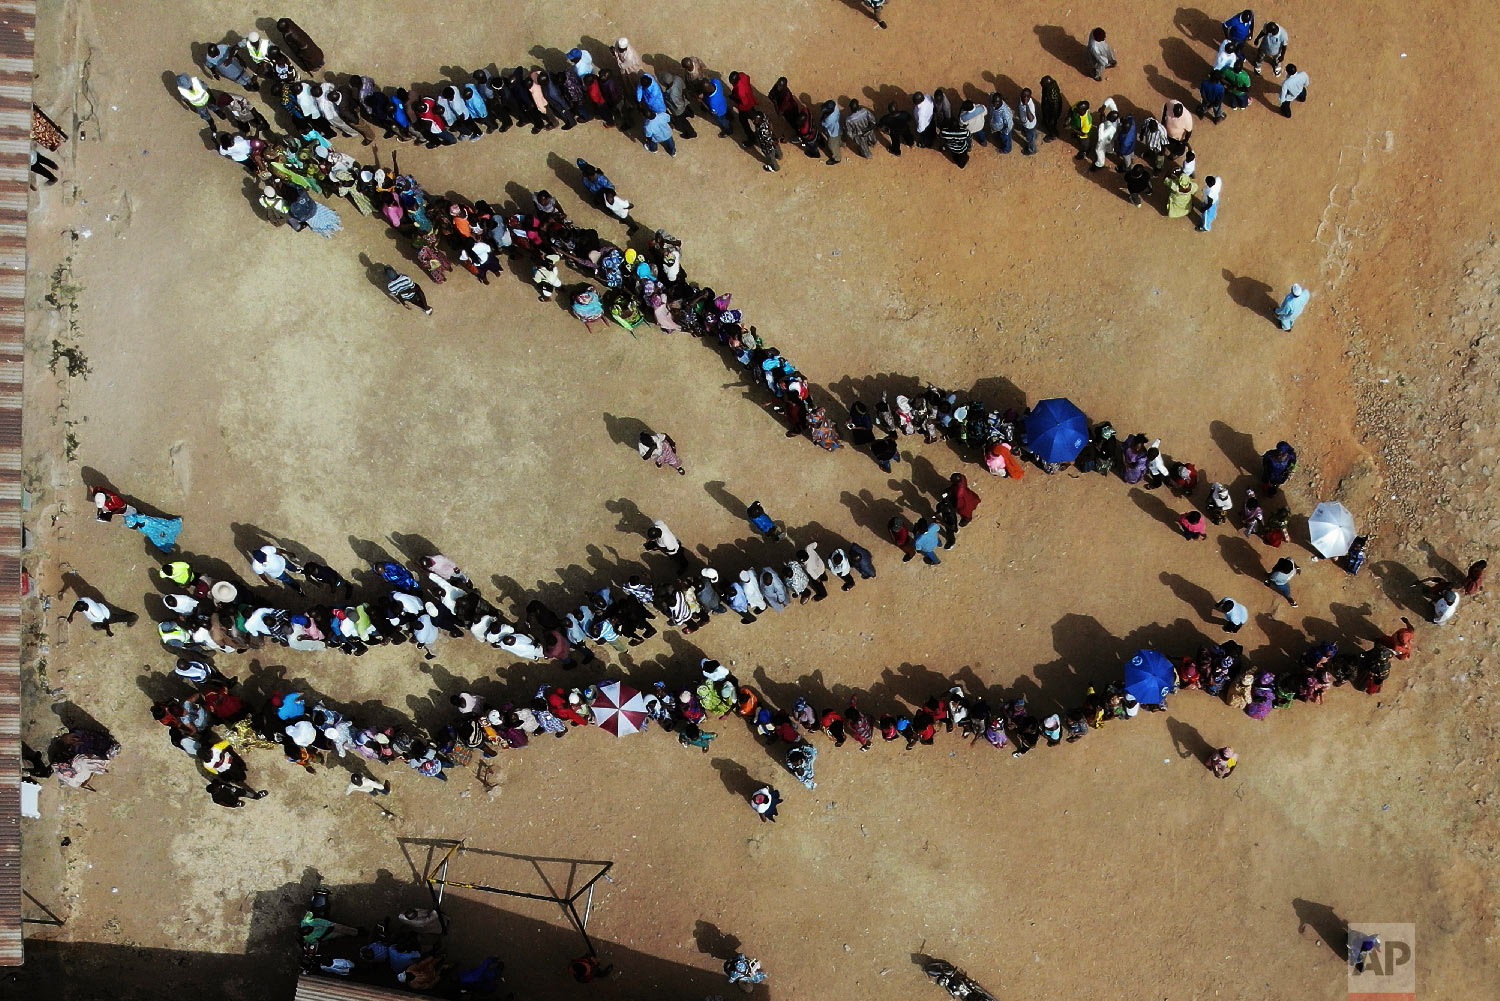 Nigerians line up to vote at the Narayi primary school in Kaduna, Nigeria, Feb. 23, 2019. (AP Photo/Jerome Delay)